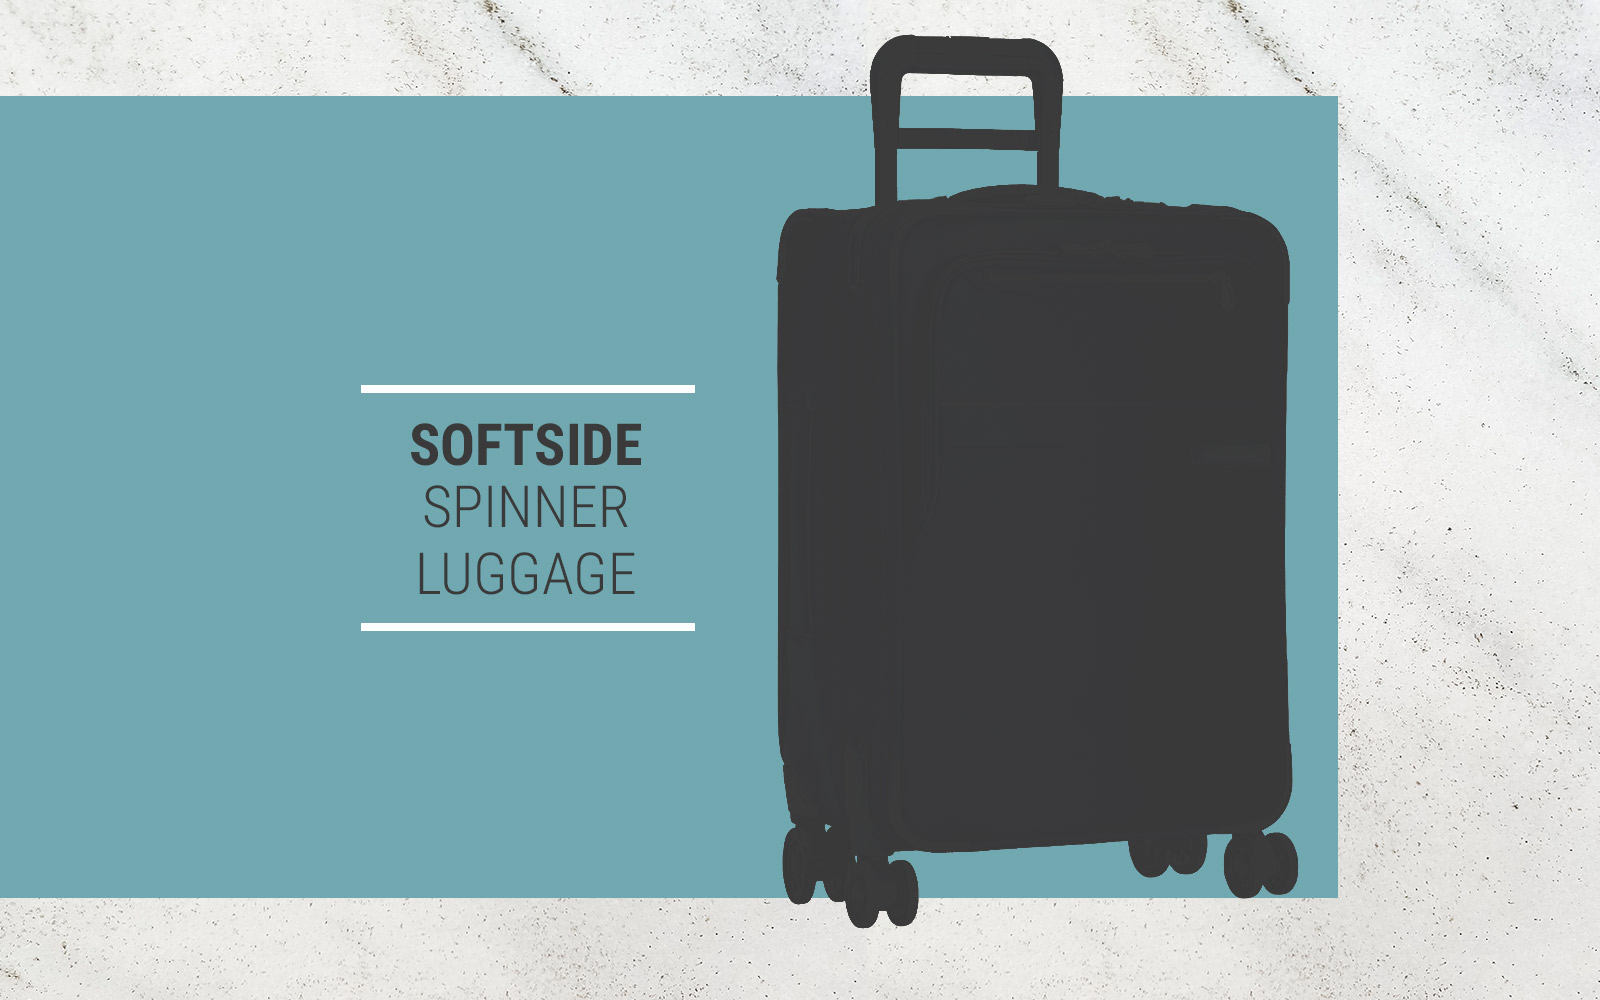 softside spinner luggage